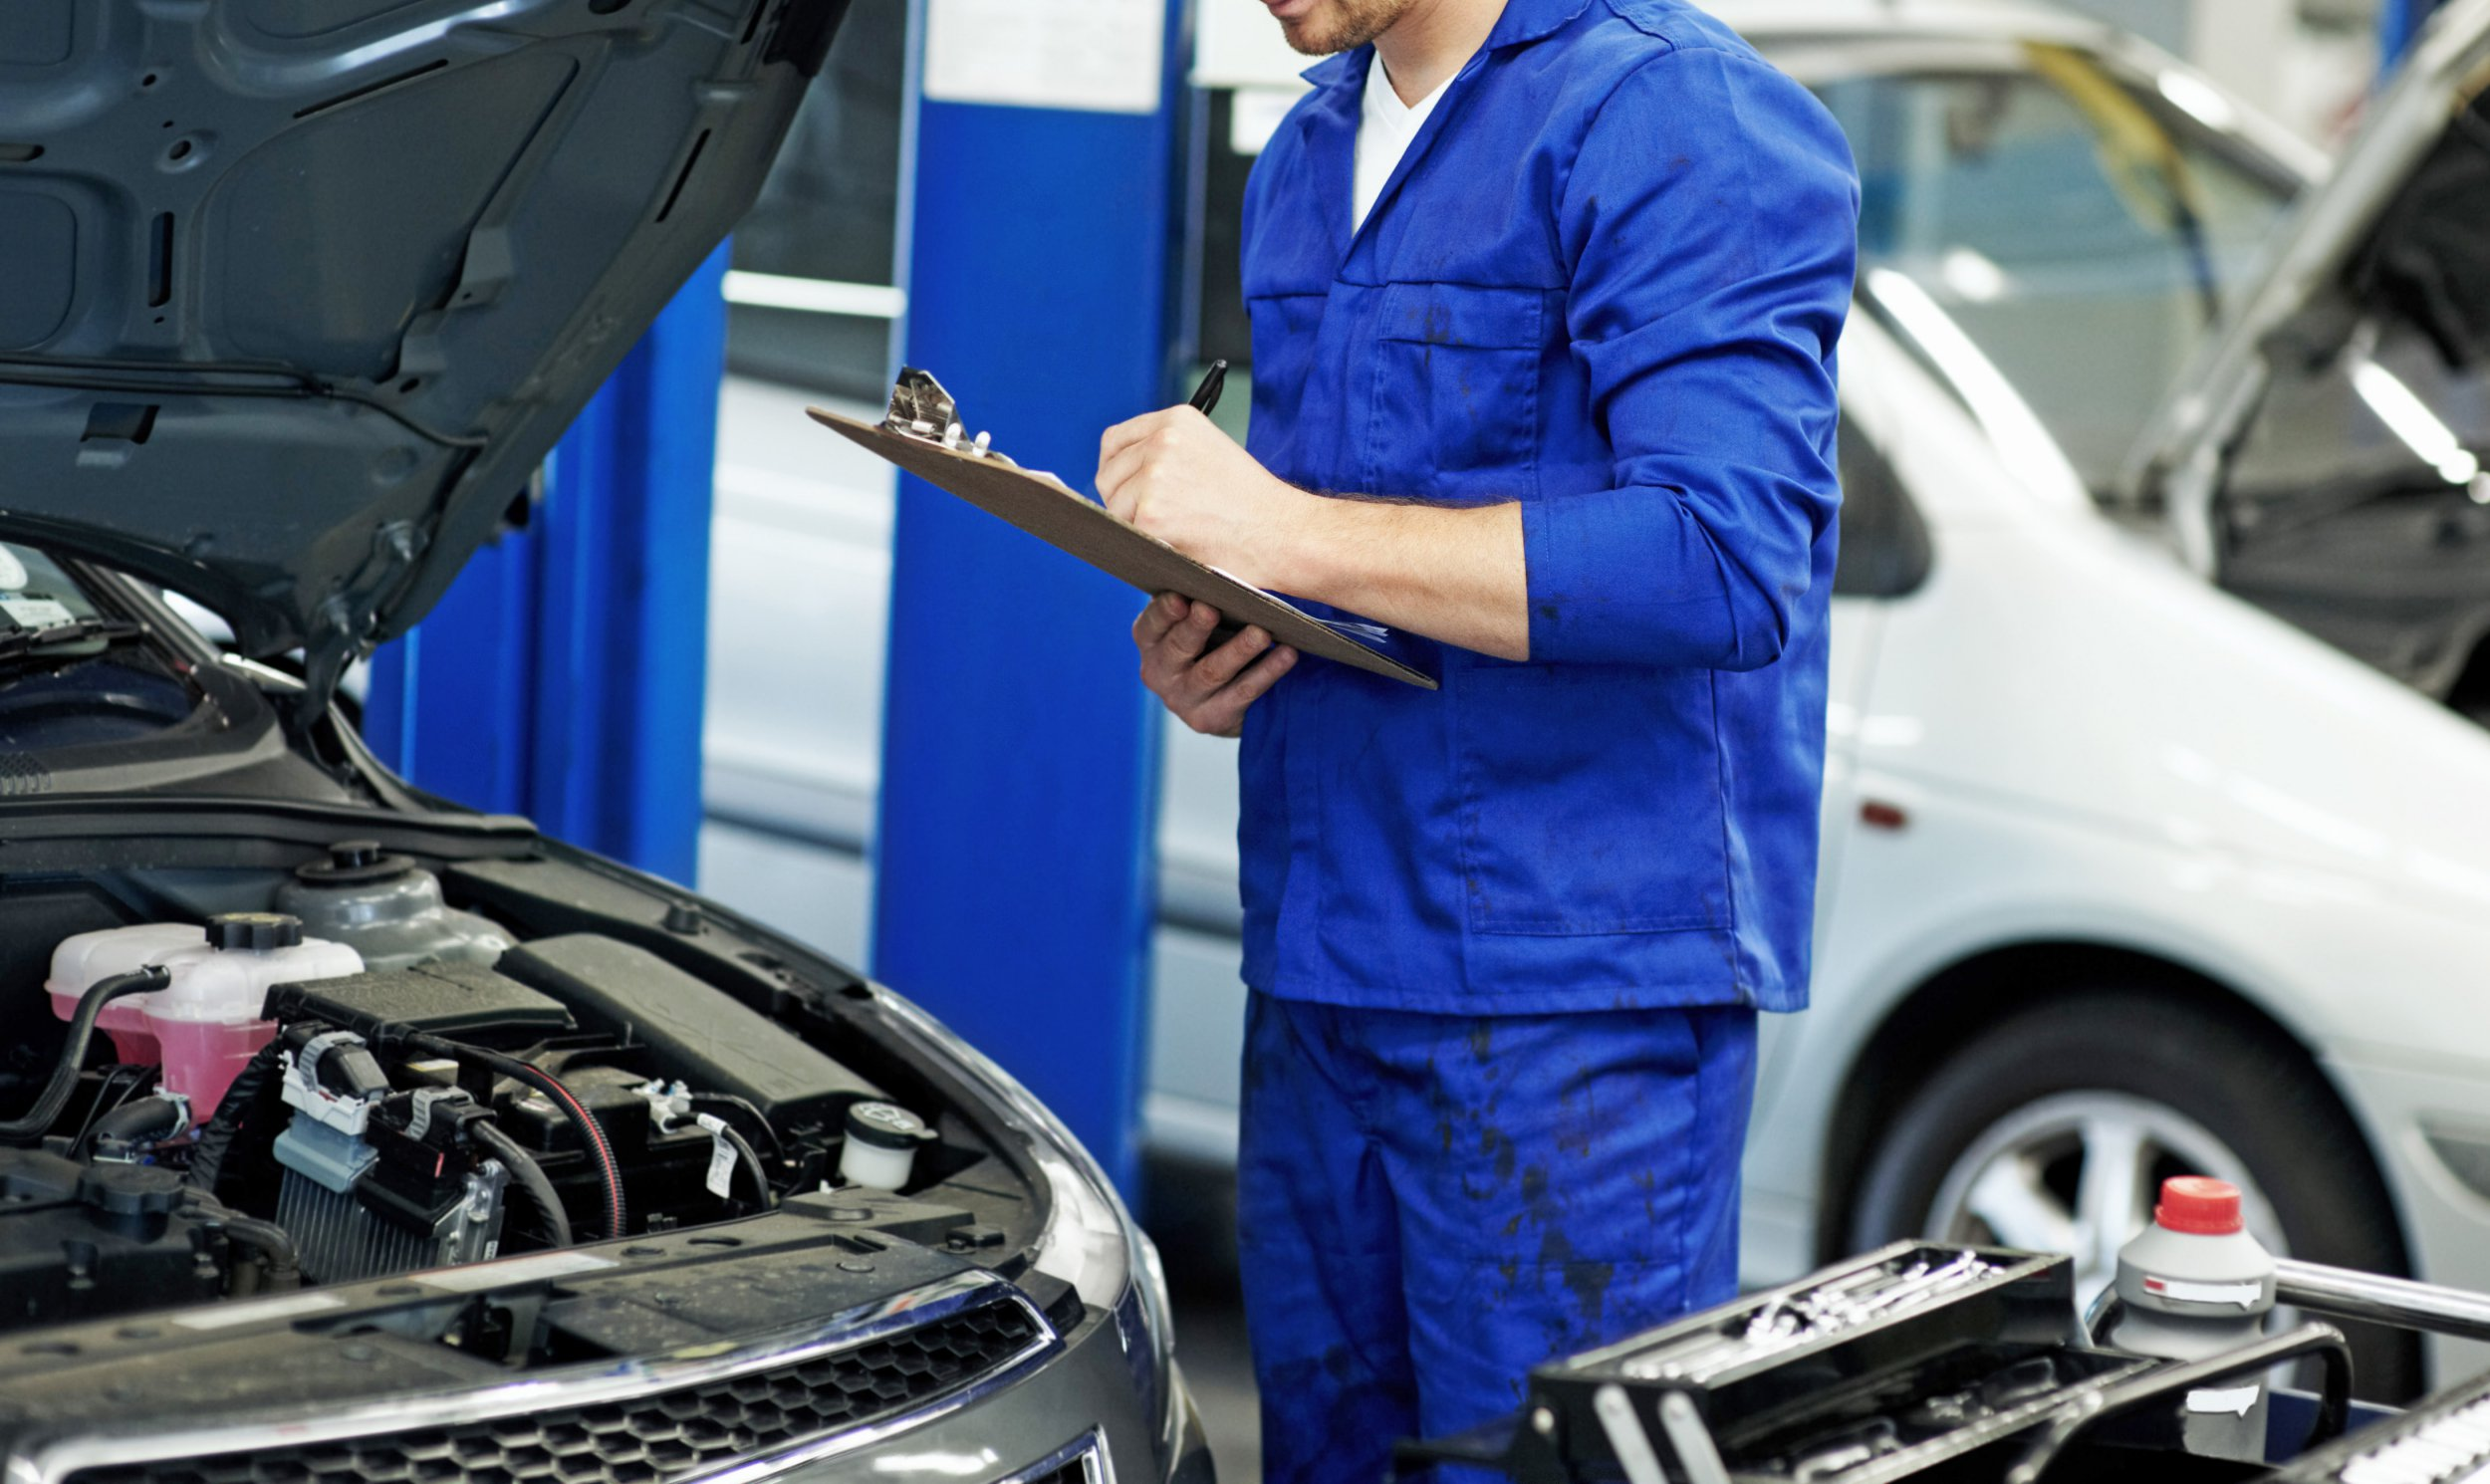 Mechanic making notes on a clipboard during a car service at his workshop